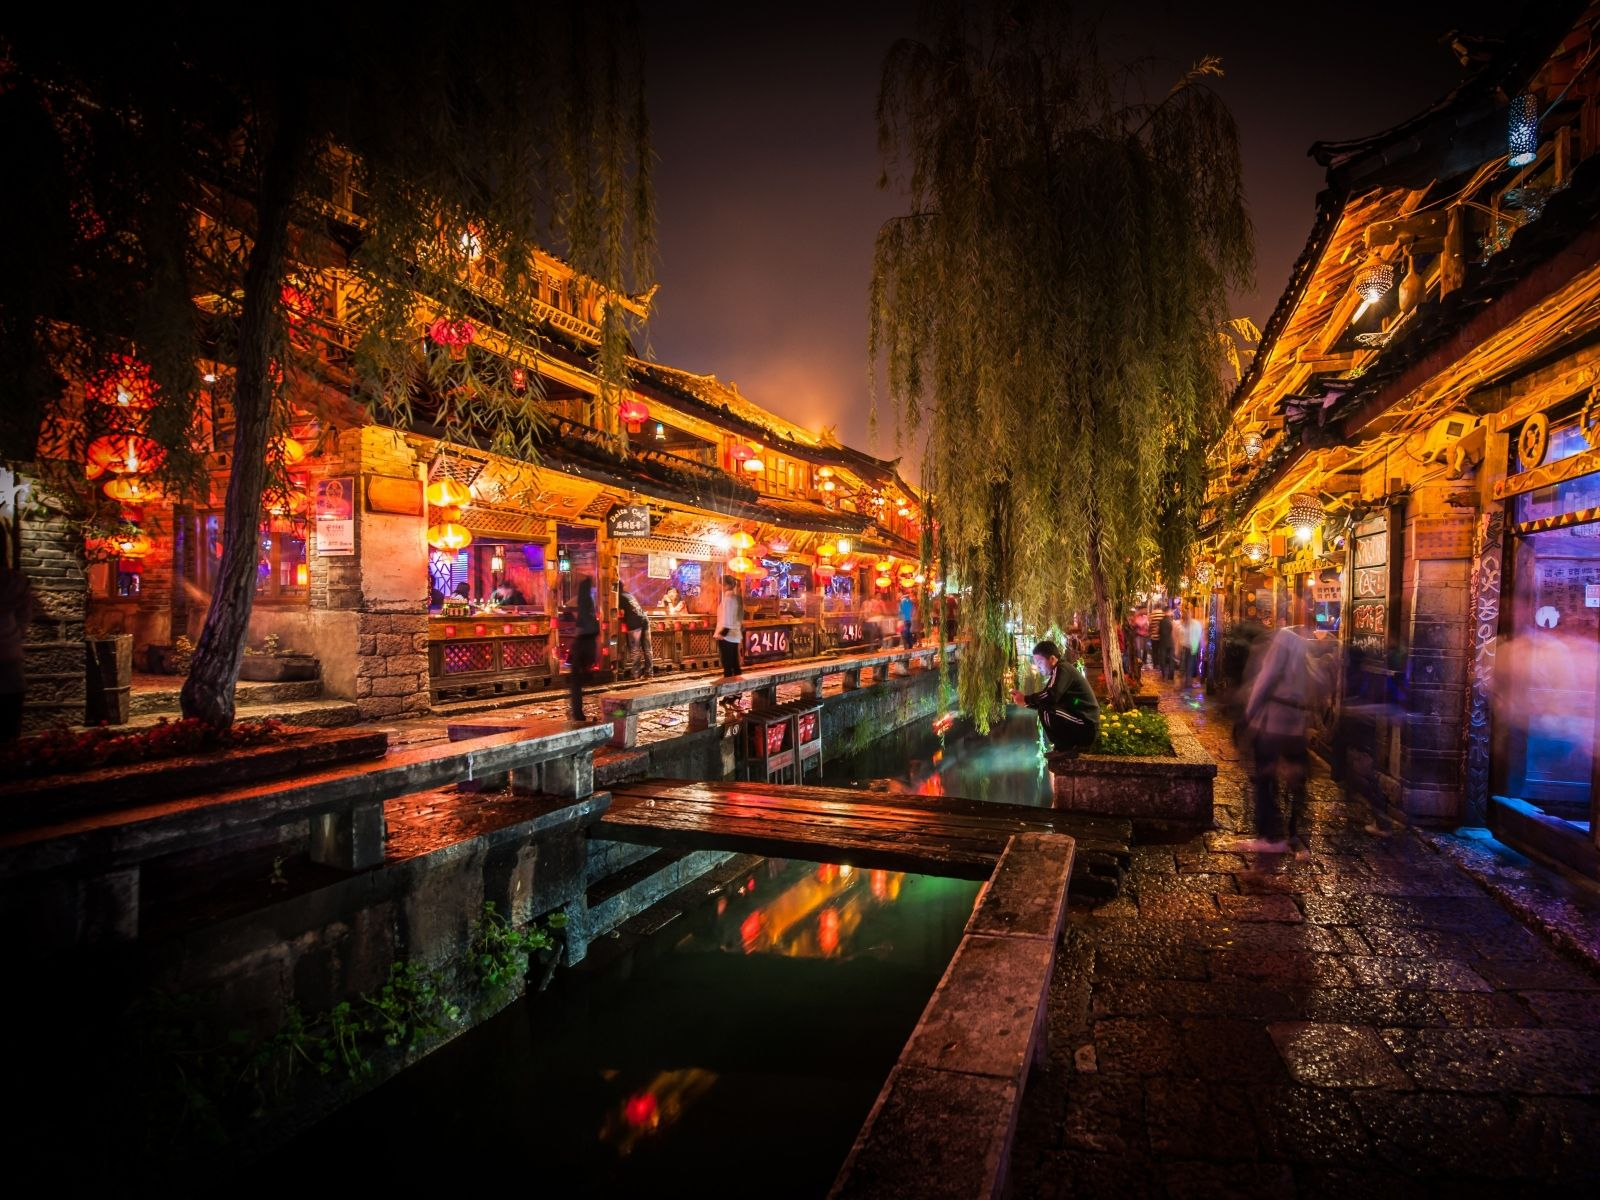 Light Trees Dark Night China Market City Lights Long Exposure Hdr Photography Canal Cities Night Sho Wallpaper Lijiang Hdr Photography City